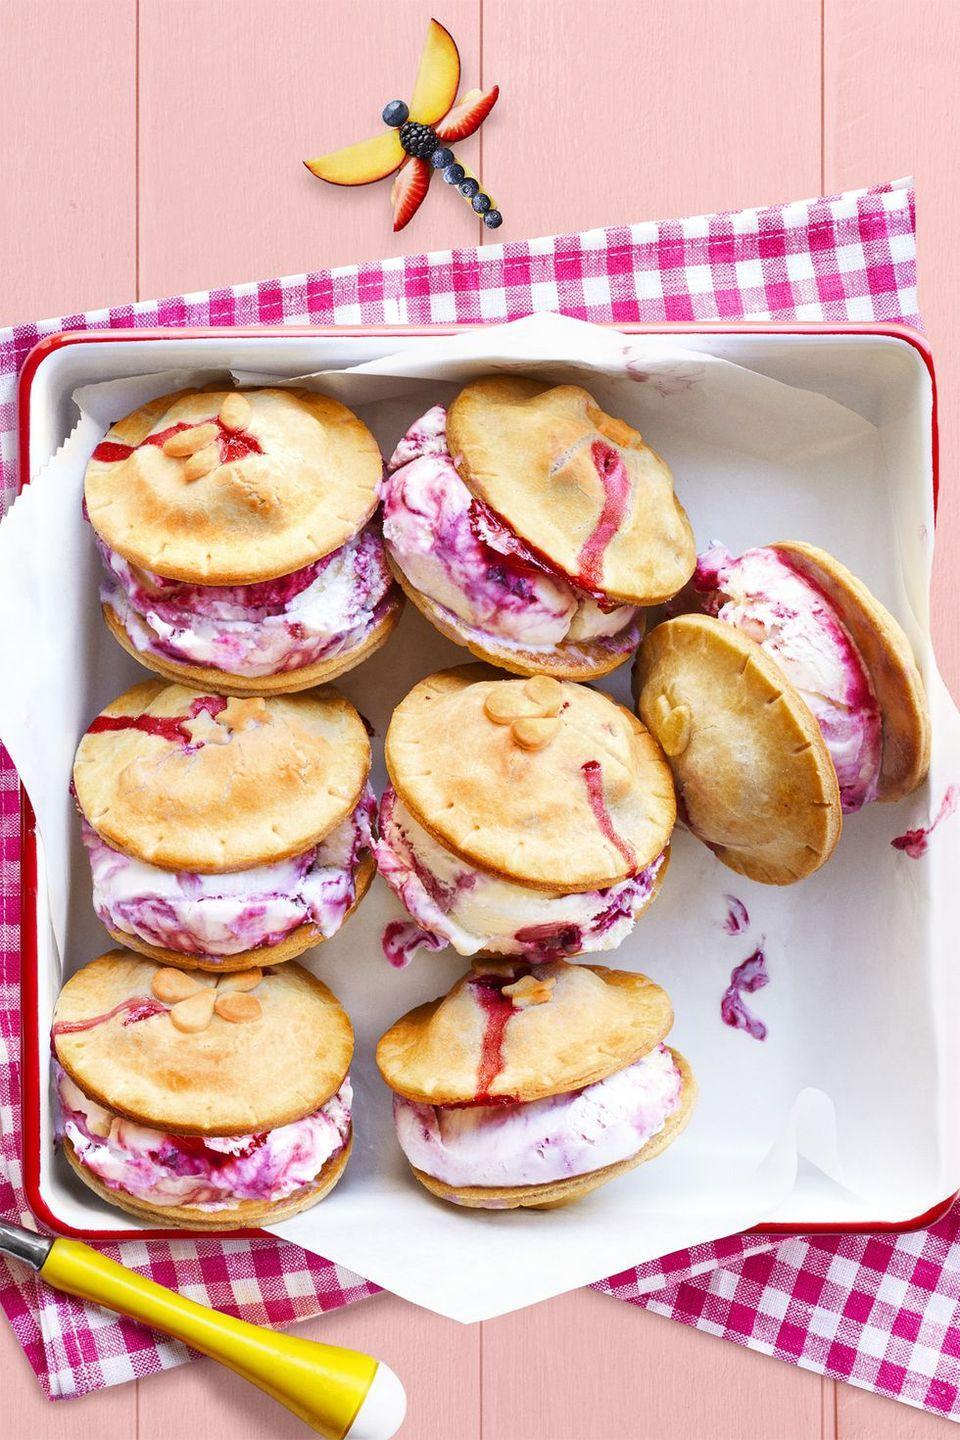 """<p>This piewich — ice cream sandwiched by two round pie crusts — is a total game-changer. Try it for yourself.</p><p><a href=""""https://www.womansday.com/food-recipes/food-drinks/recipes/a59001/fresh-berry-ice-cream-piewiches-recipe/"""" rel=""""nofollow noopener"""" target=""""_blank"""" data-ylk=""""slk:Get the recipe from Woman's Day »"""" class=""""link rapid-noclick-resp""""><em>Get the recipe from Woman's Day »</em></a></p>"""